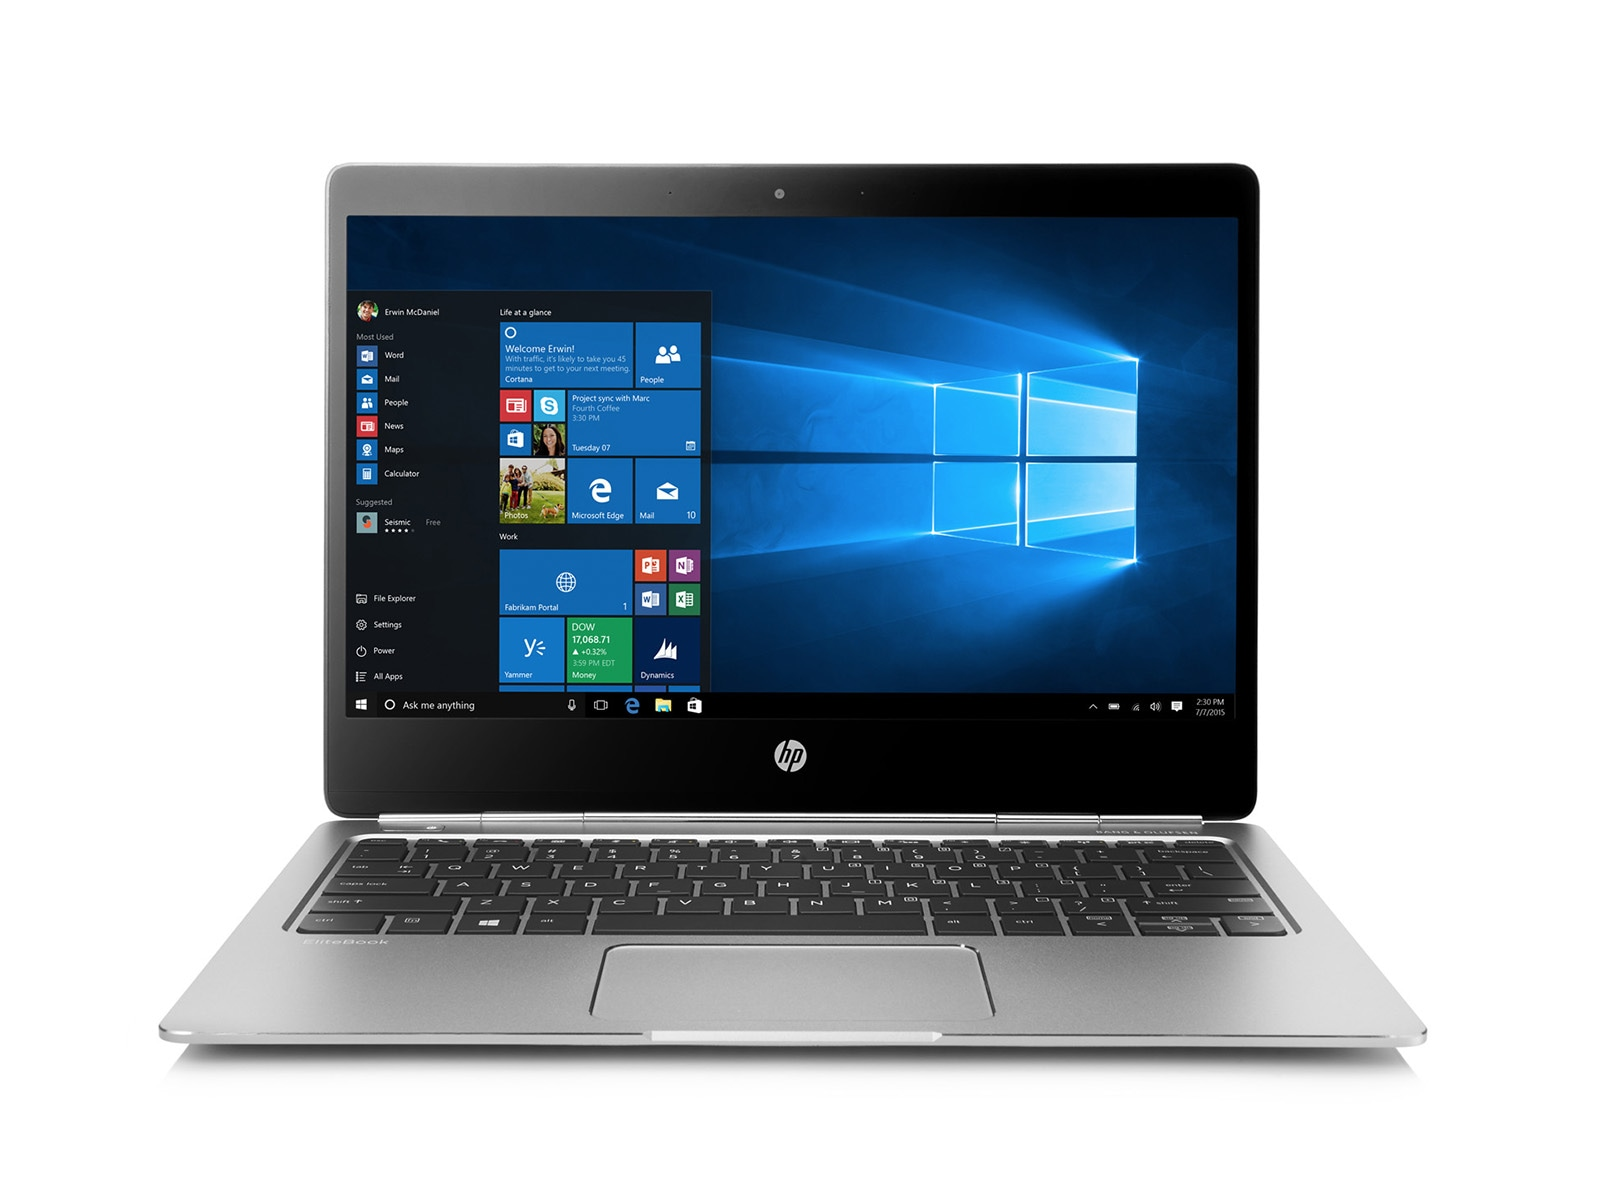 HP Elite Book Folio G1